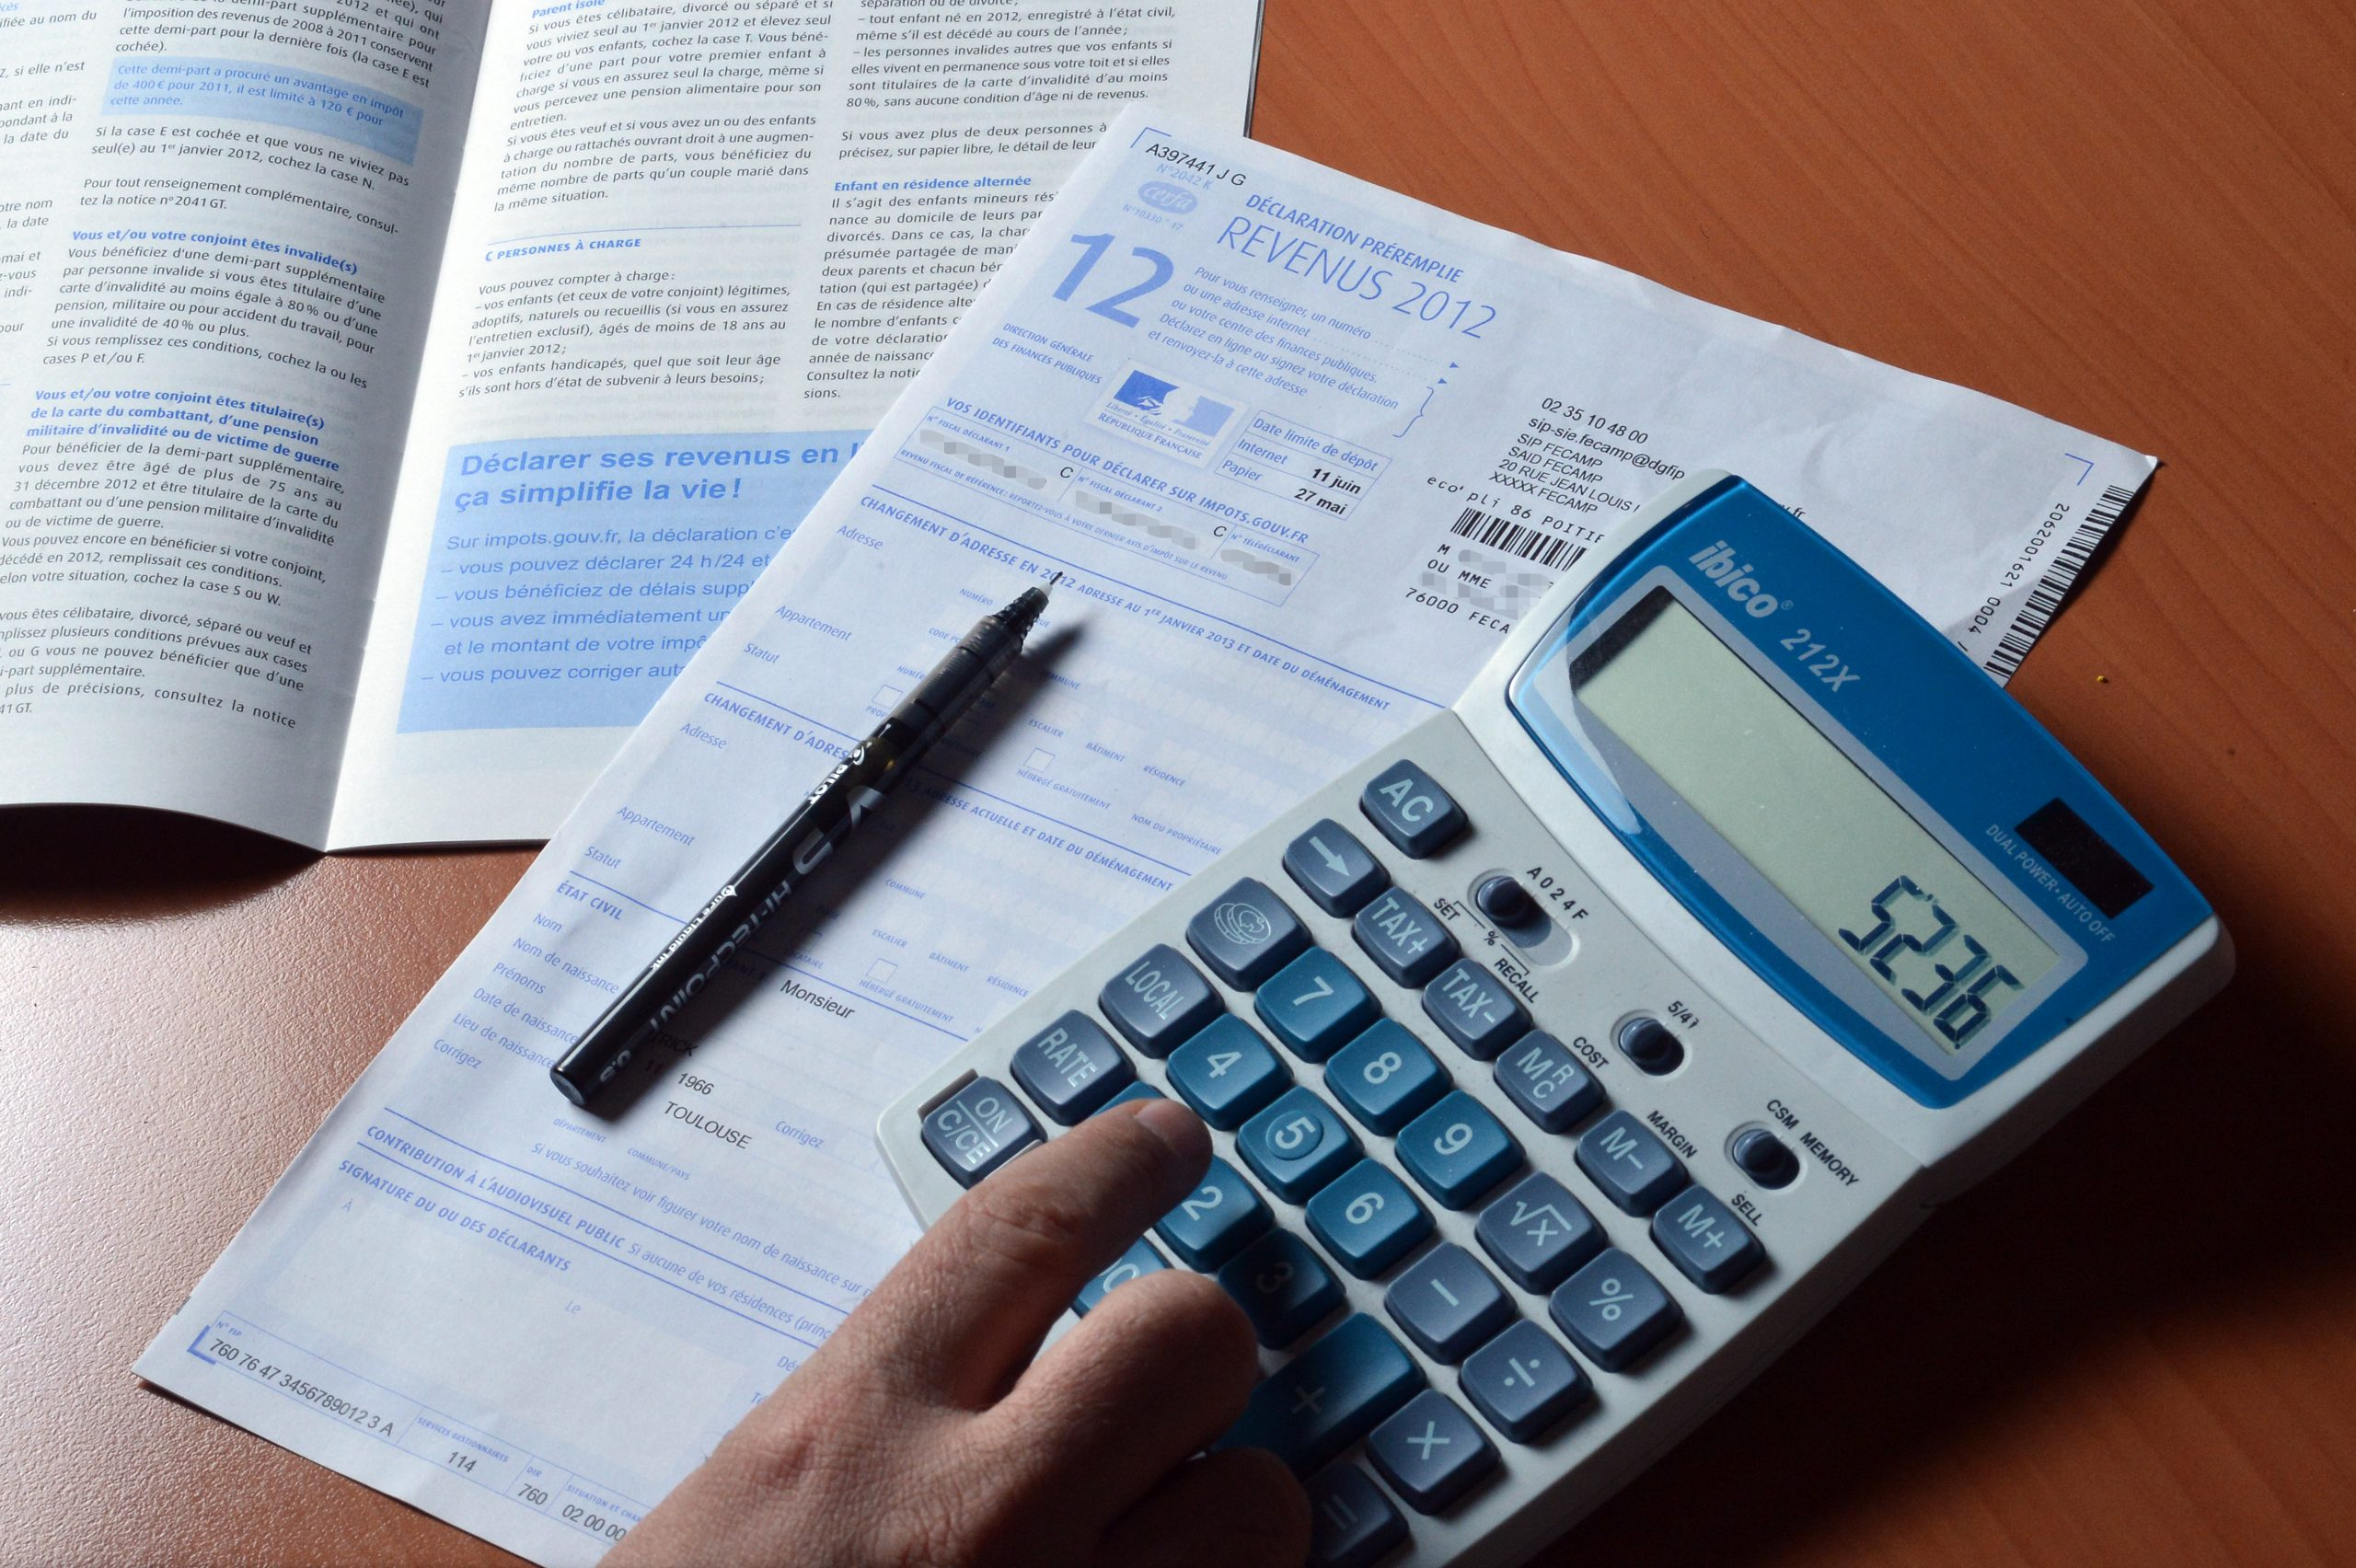 Record number of tax returns filed online, says HMRC